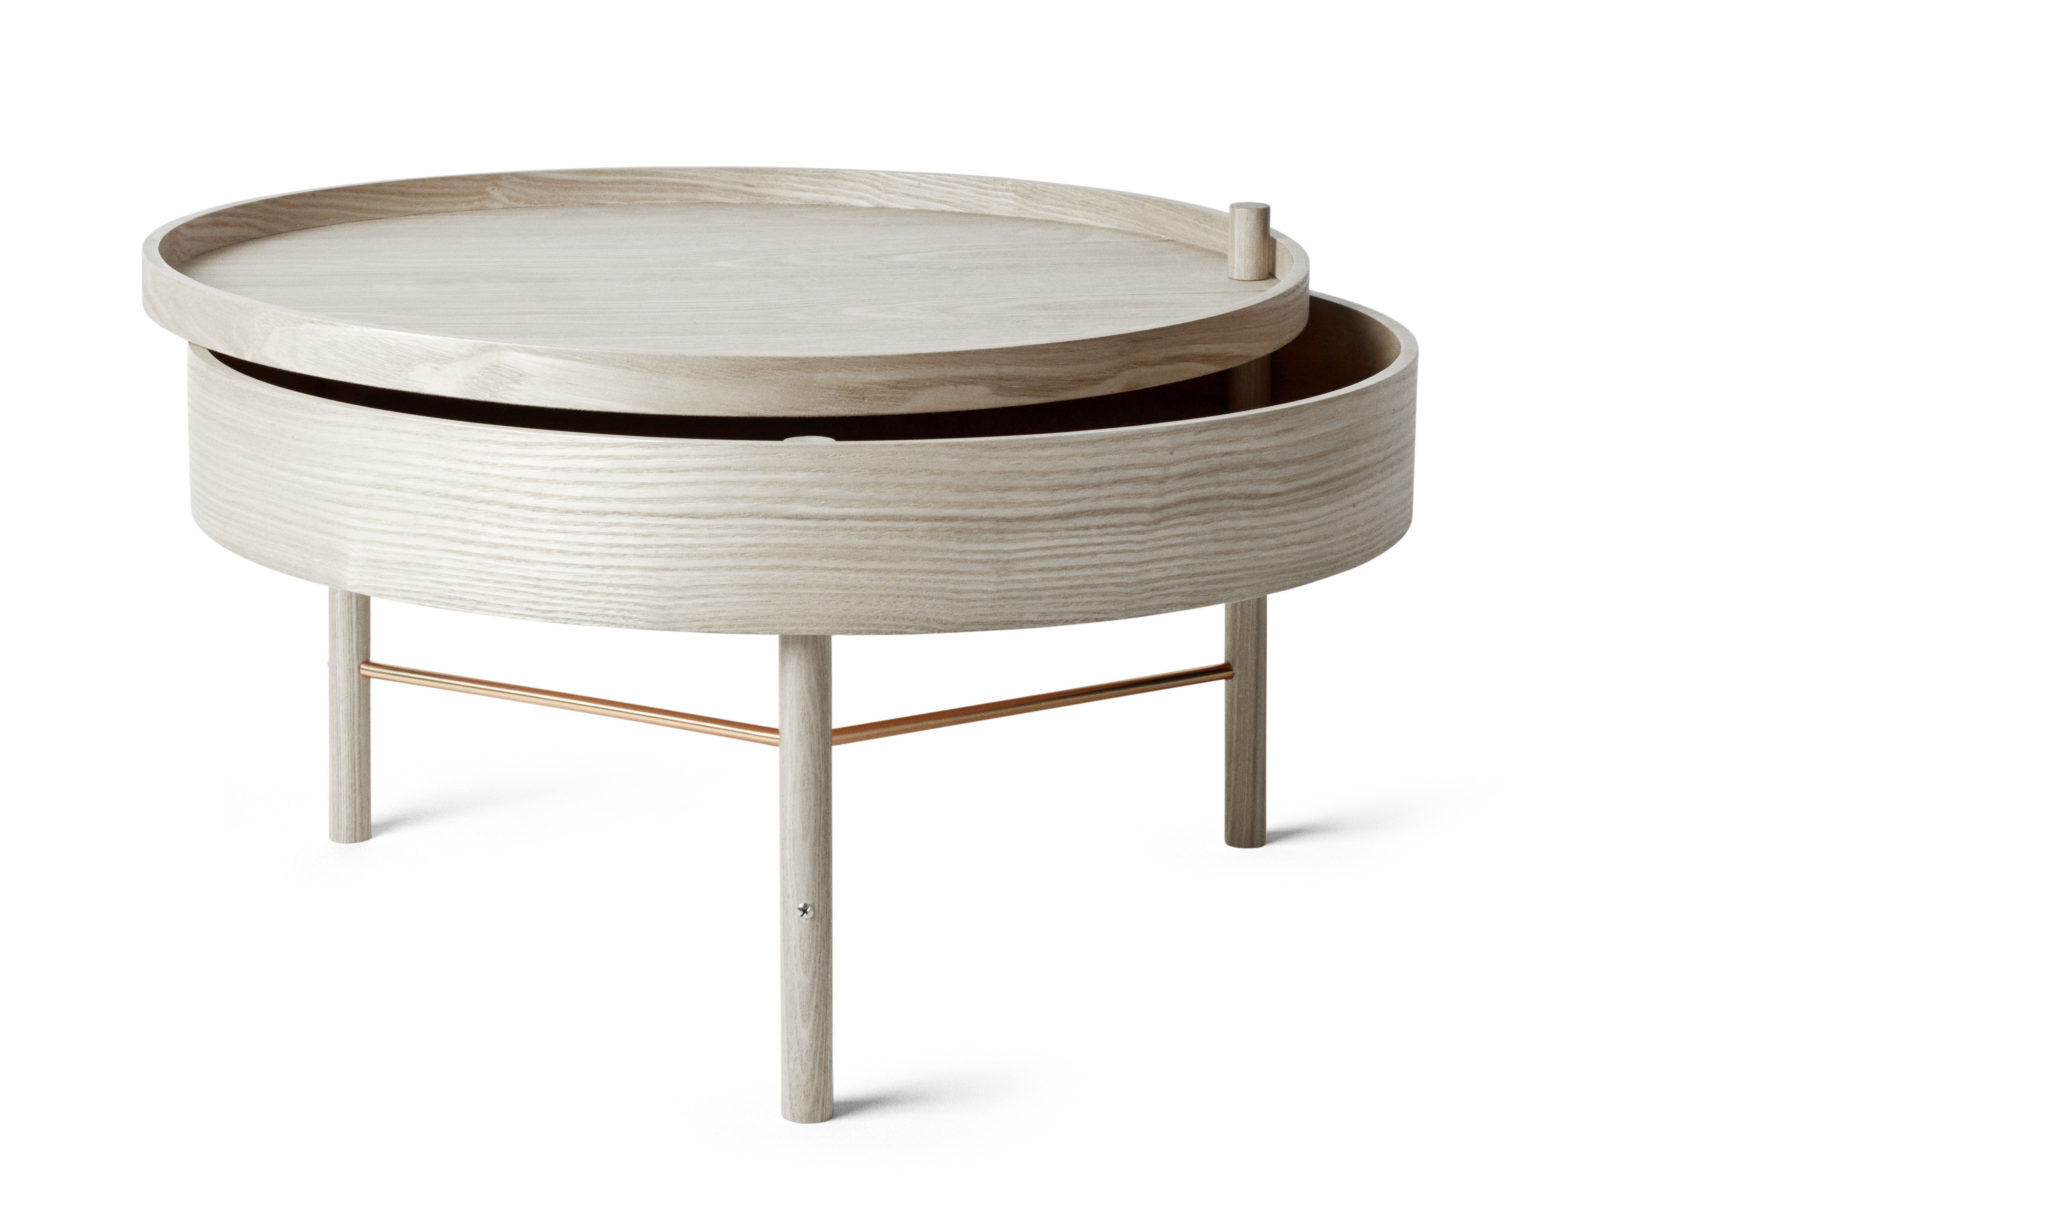 The Turning Table by German designer Theresa Arns